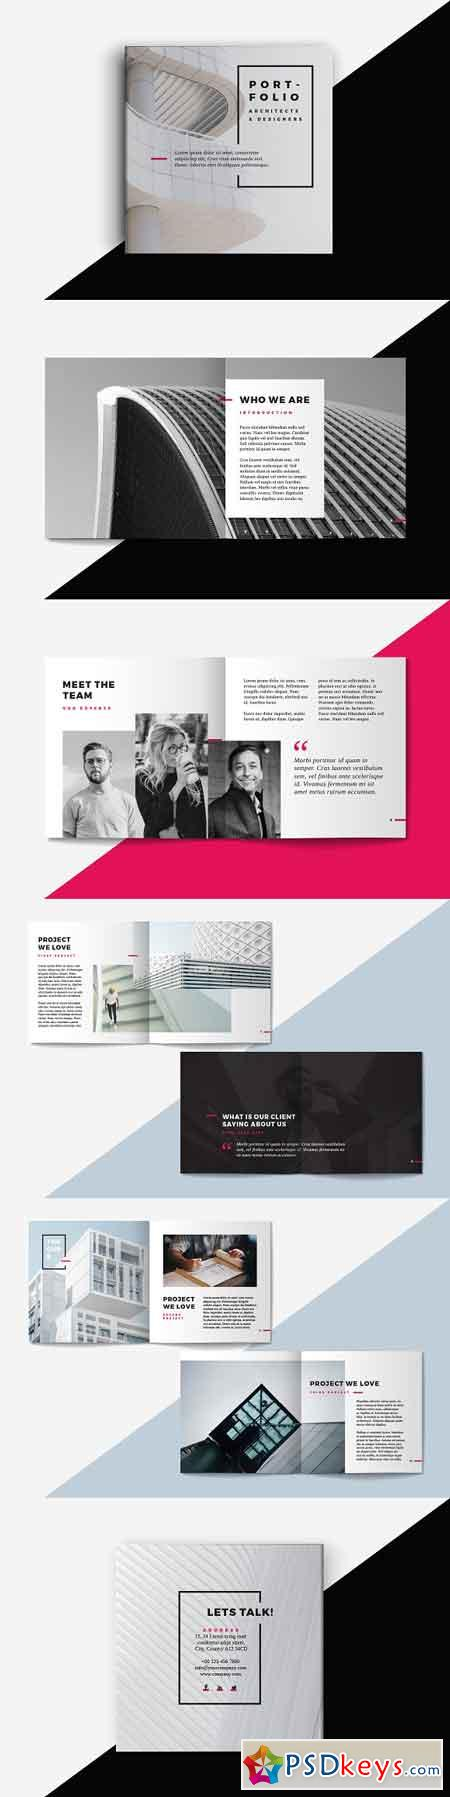 Square Portfolio Brochure Template 2414465